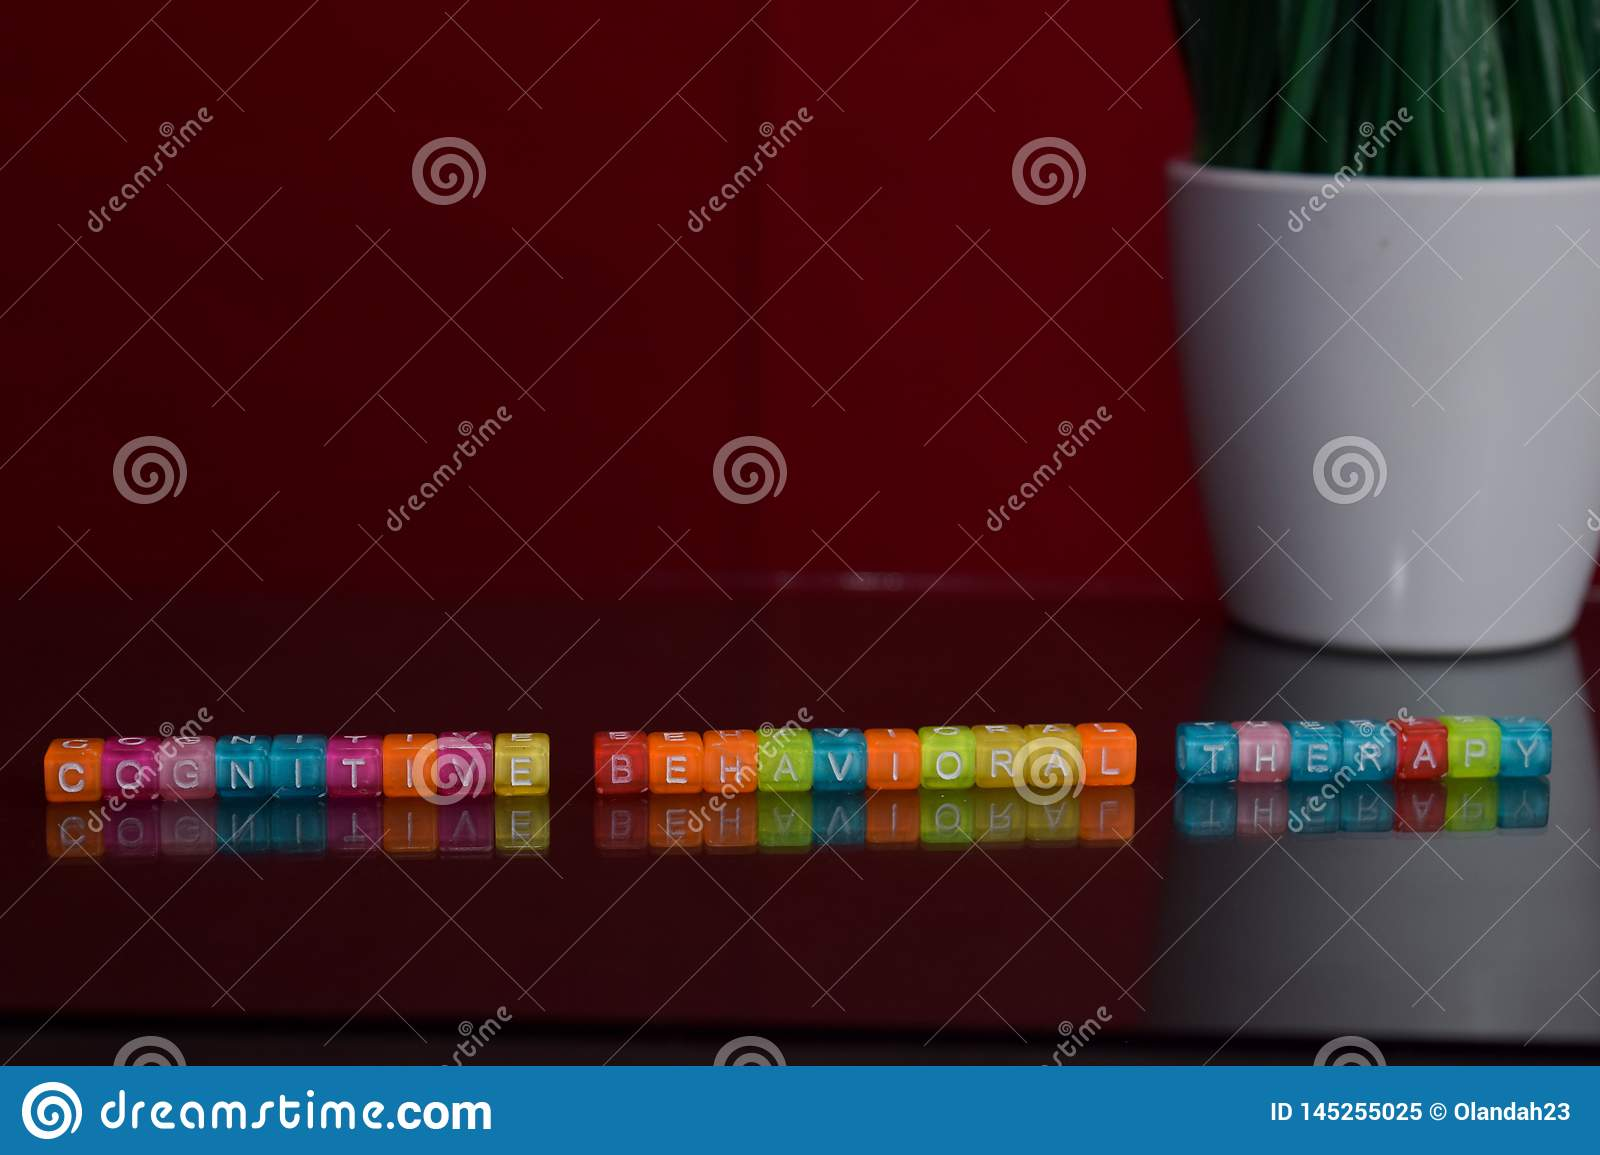 Cognitive Behavioral Therapy Text At Colorful Wooden Block